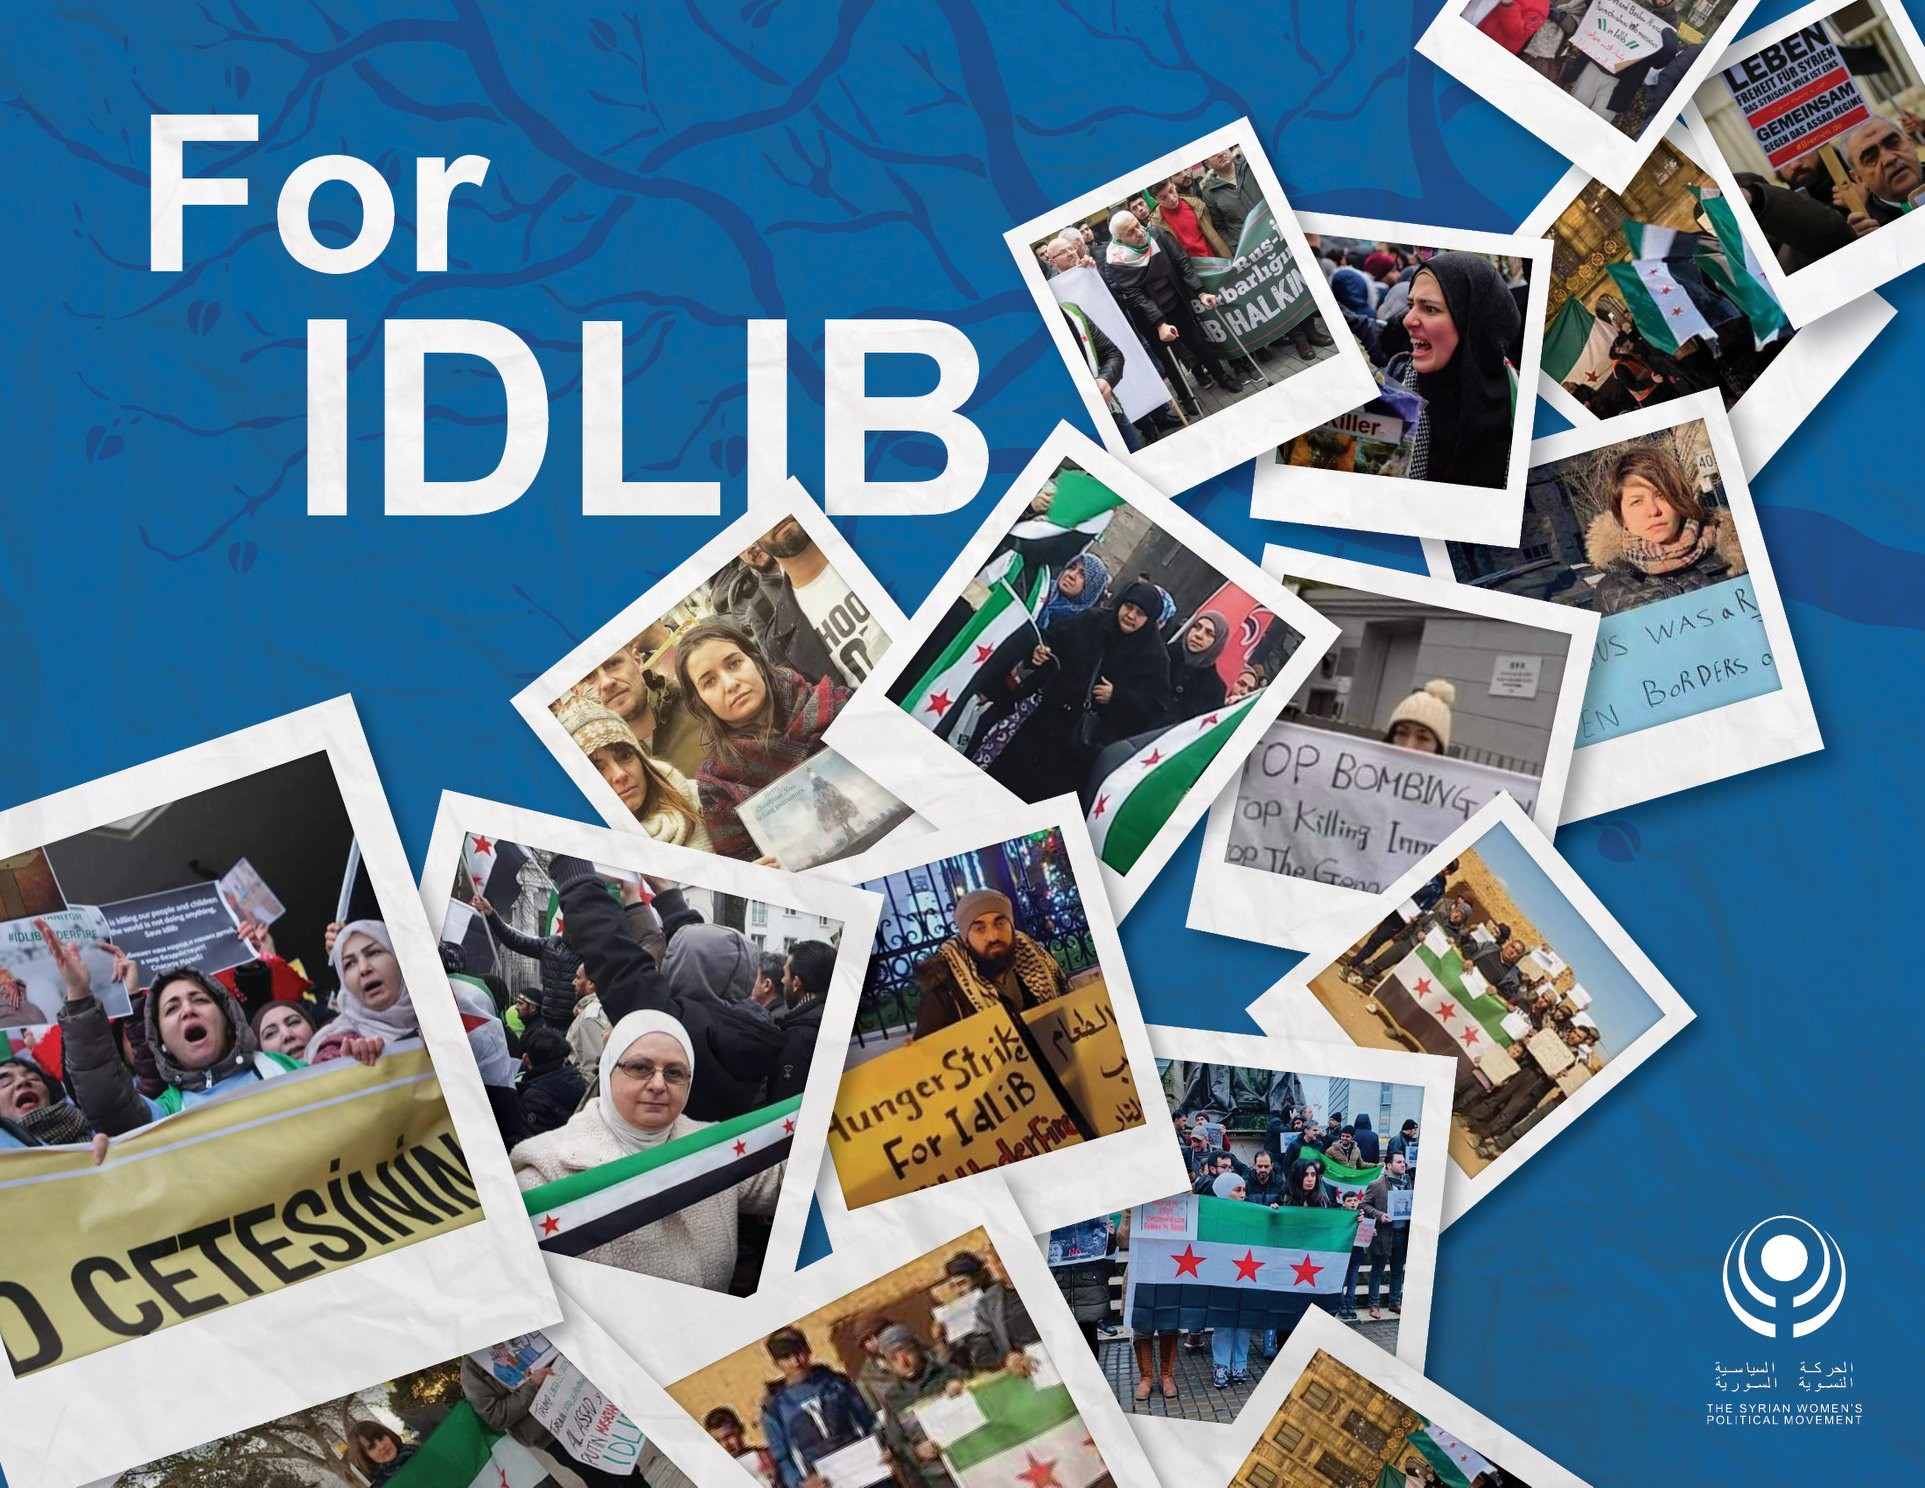 For Idlib, from all over the world…